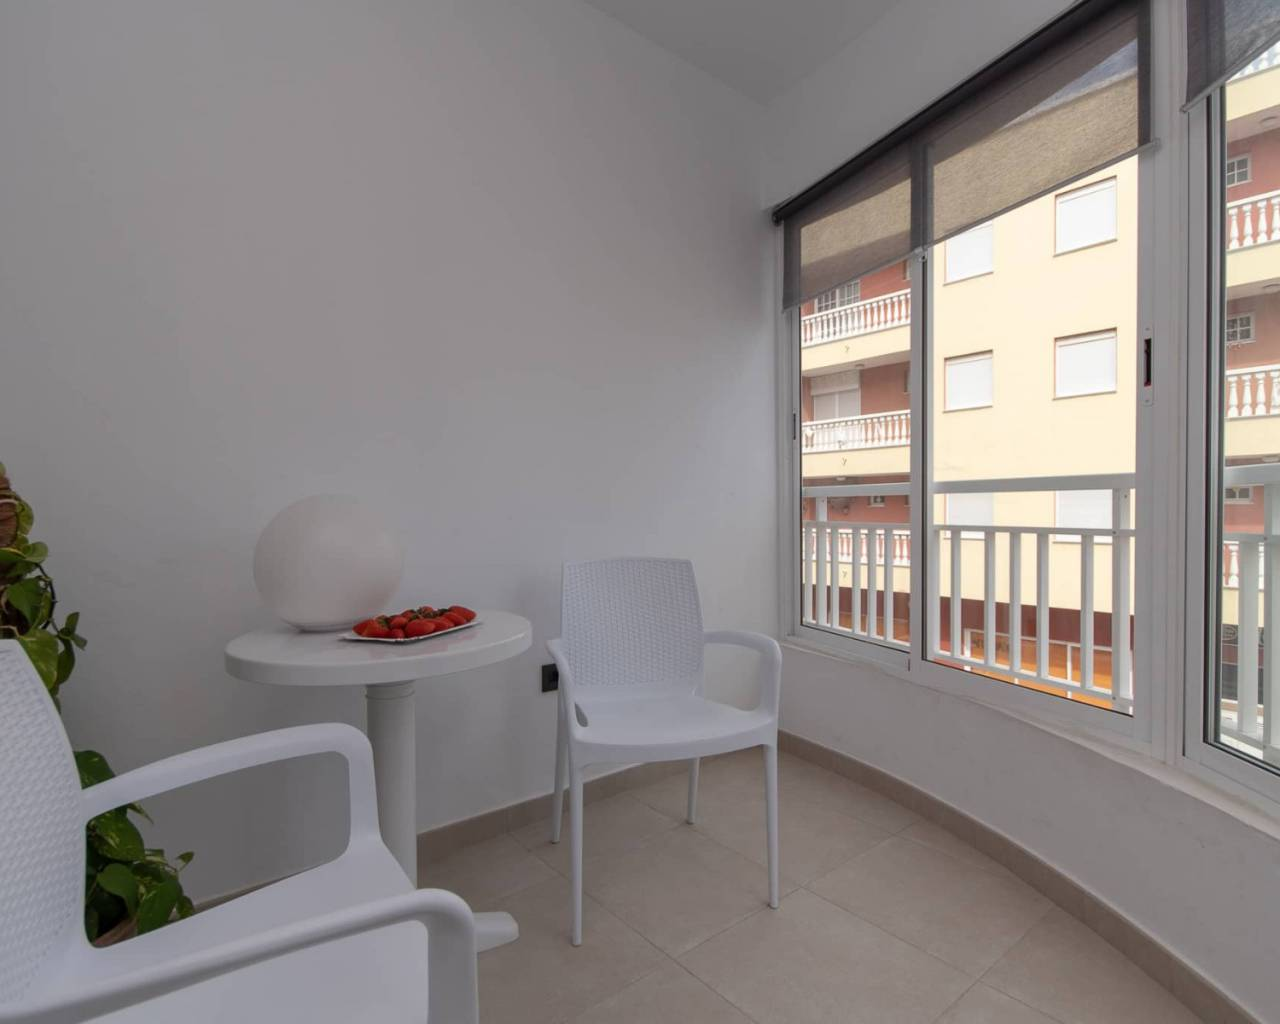 Apartment - Sale - Tenerife - El Médano